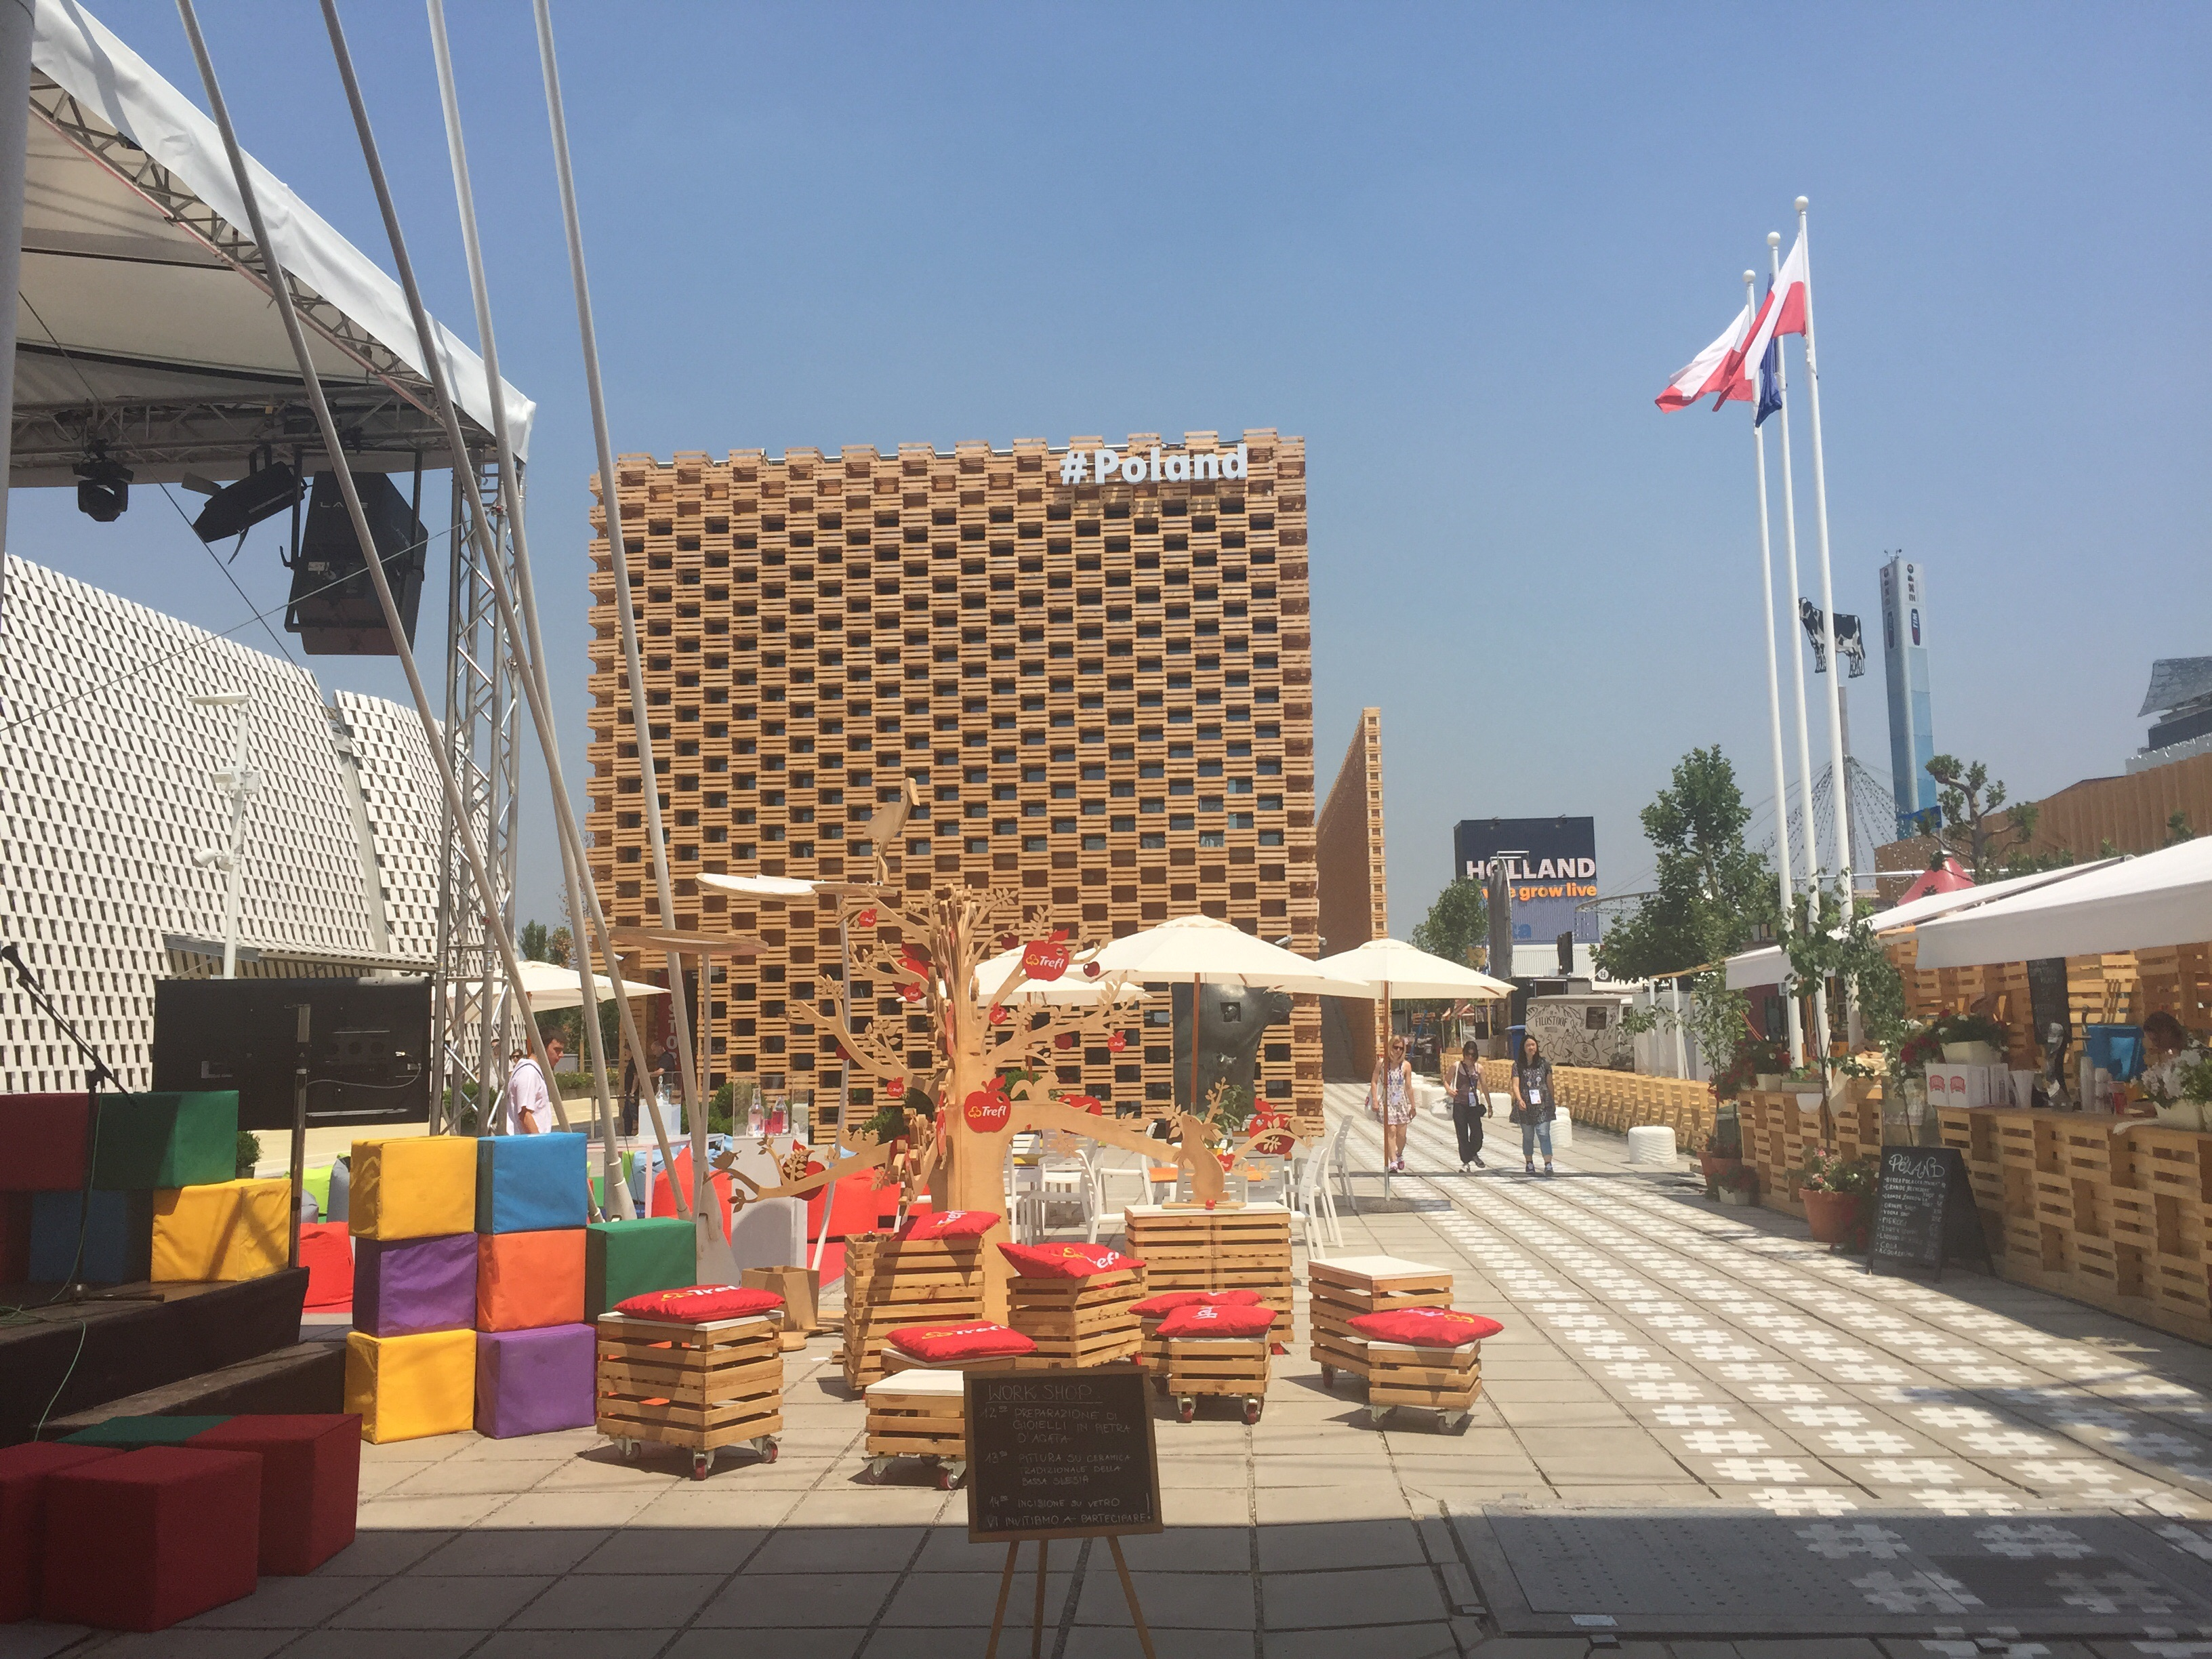 Poland's pavilion at the Expo Milan 2015.